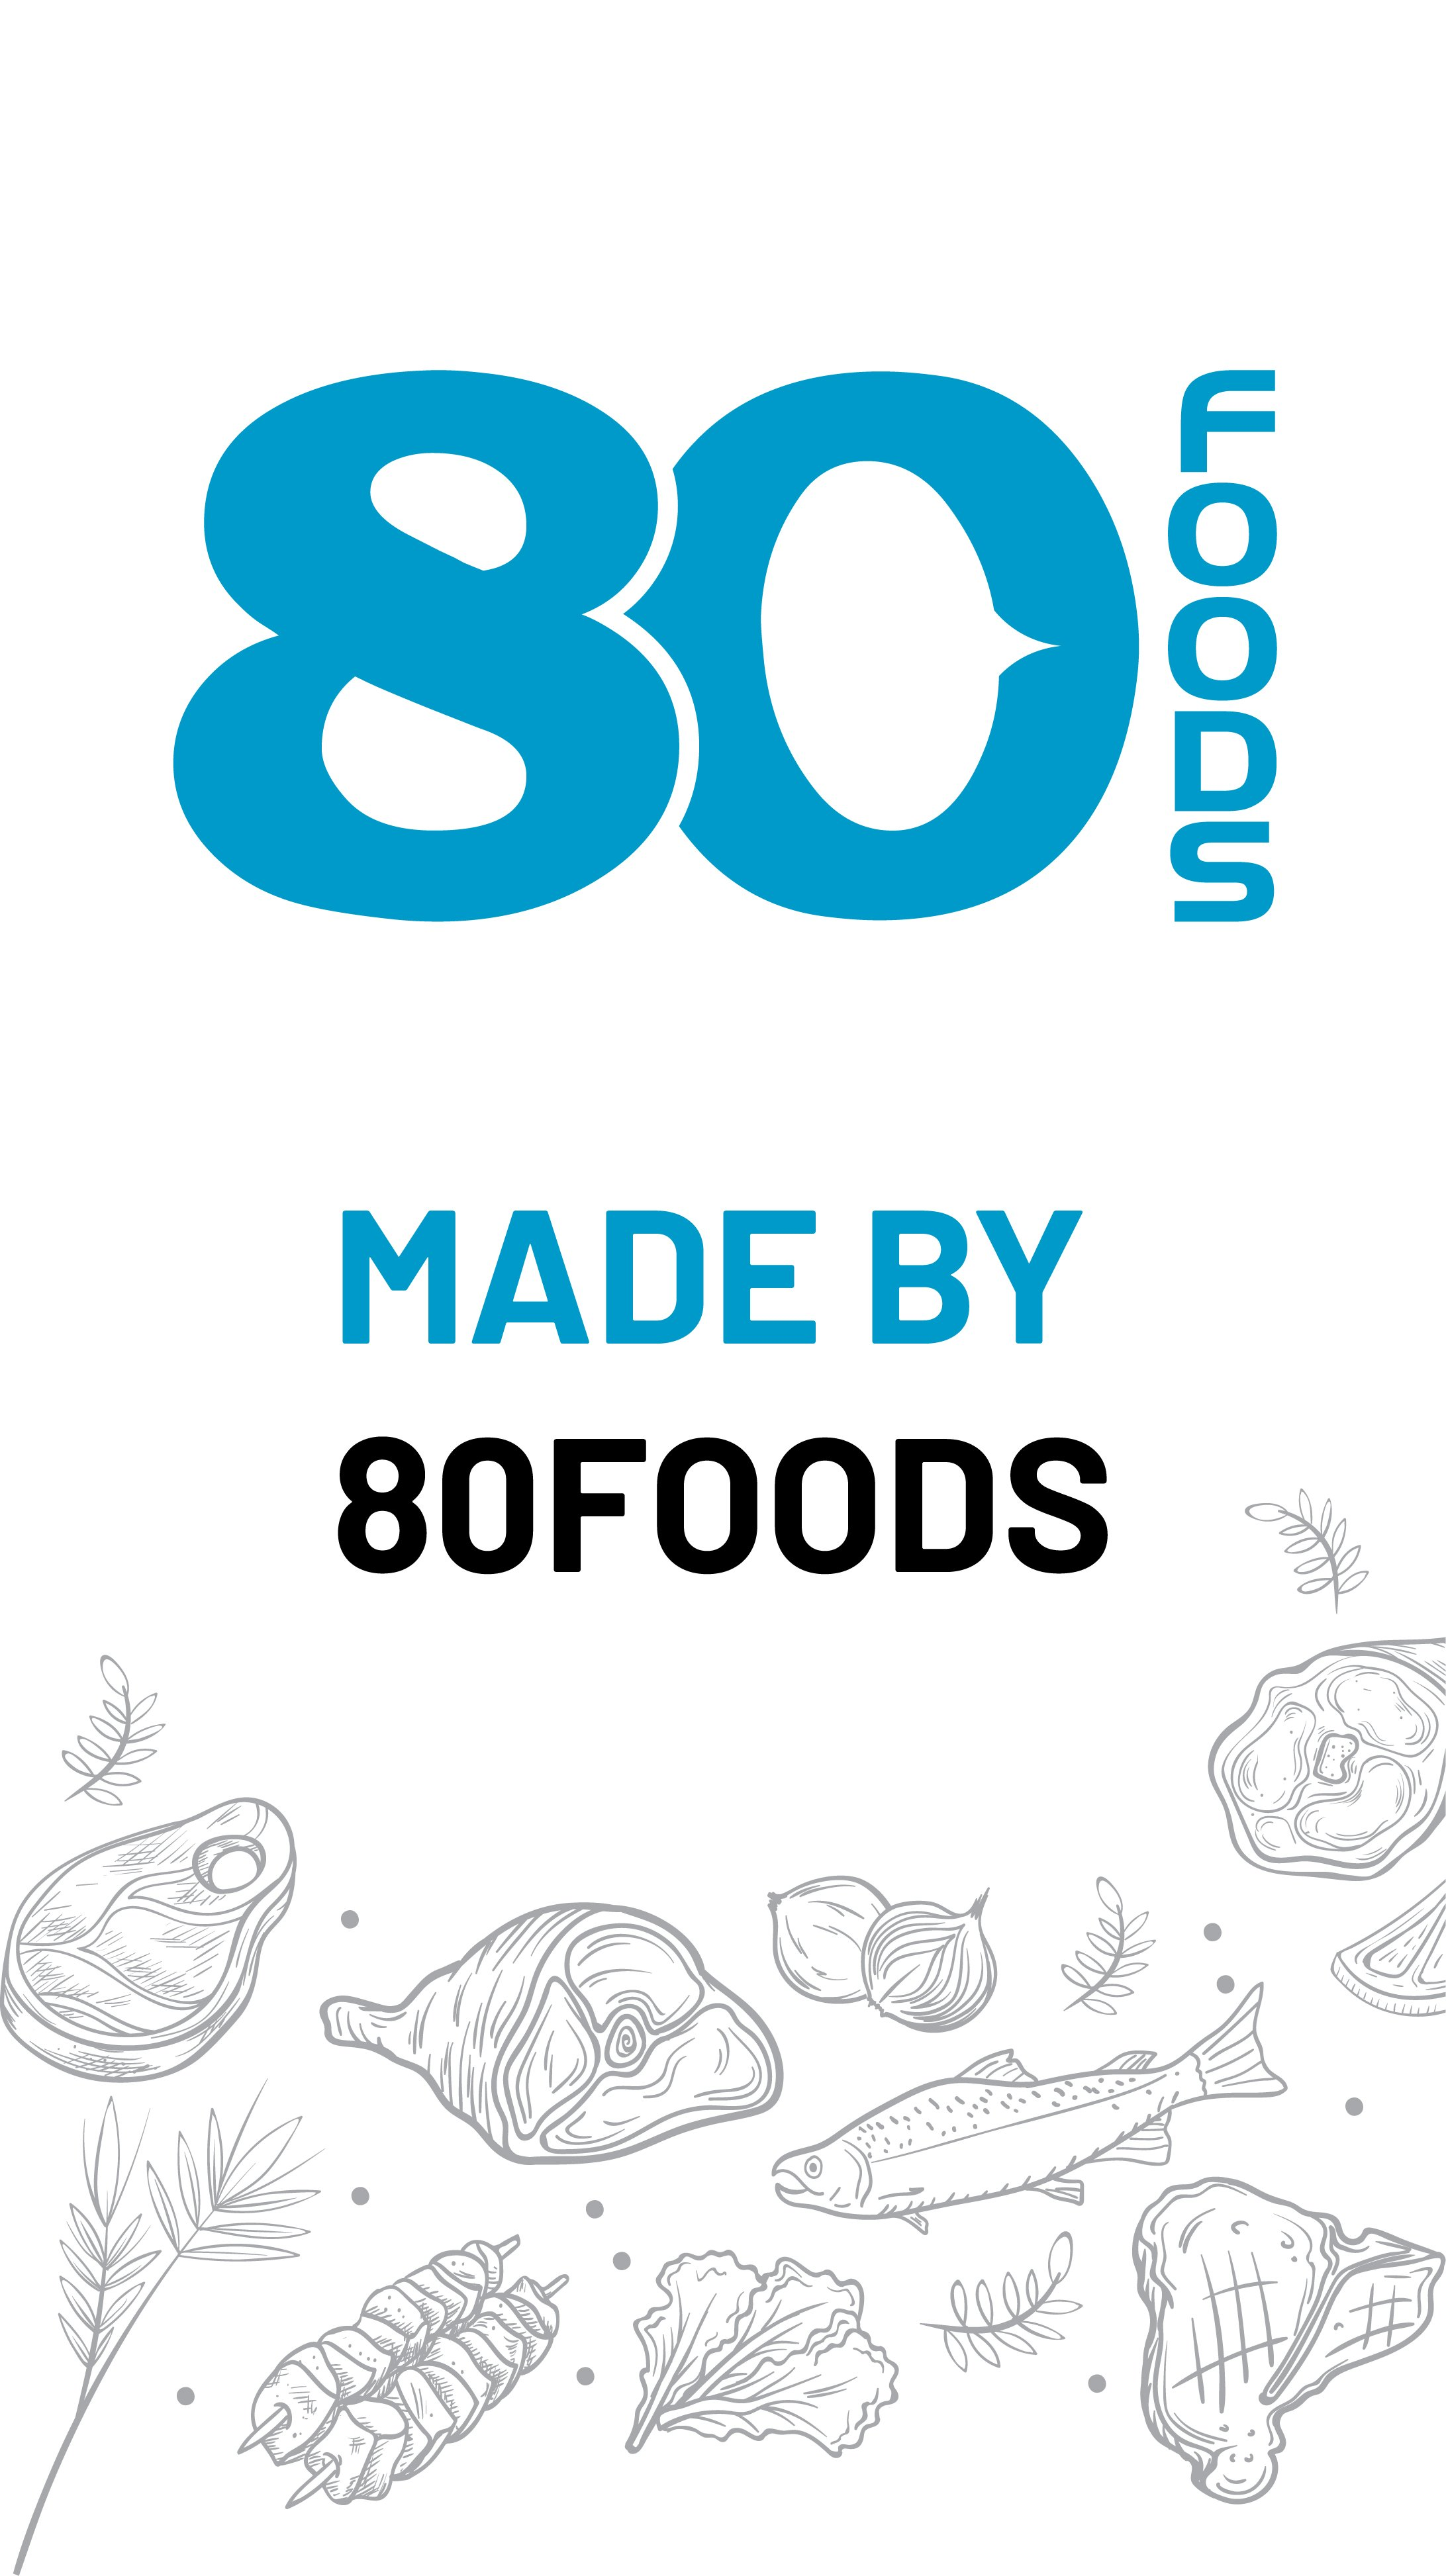 Sản phẩm made by 80FOODS